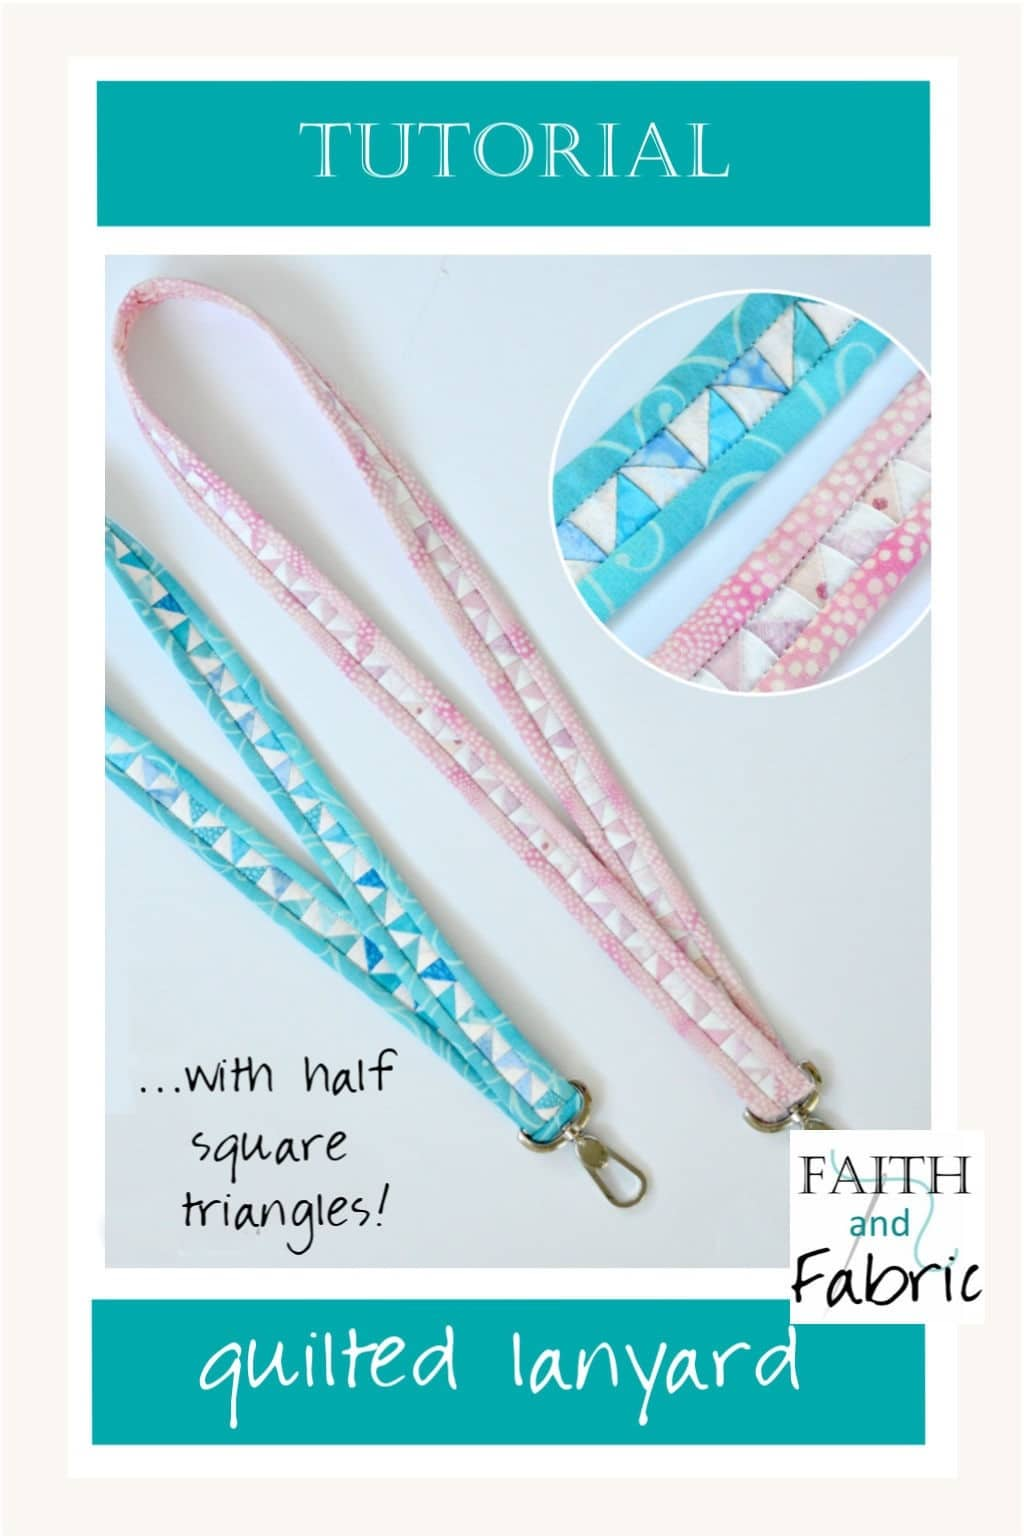 Create a one-of-a-kind quilted lanyard with half square triangles! Created by Faith and Fabric.